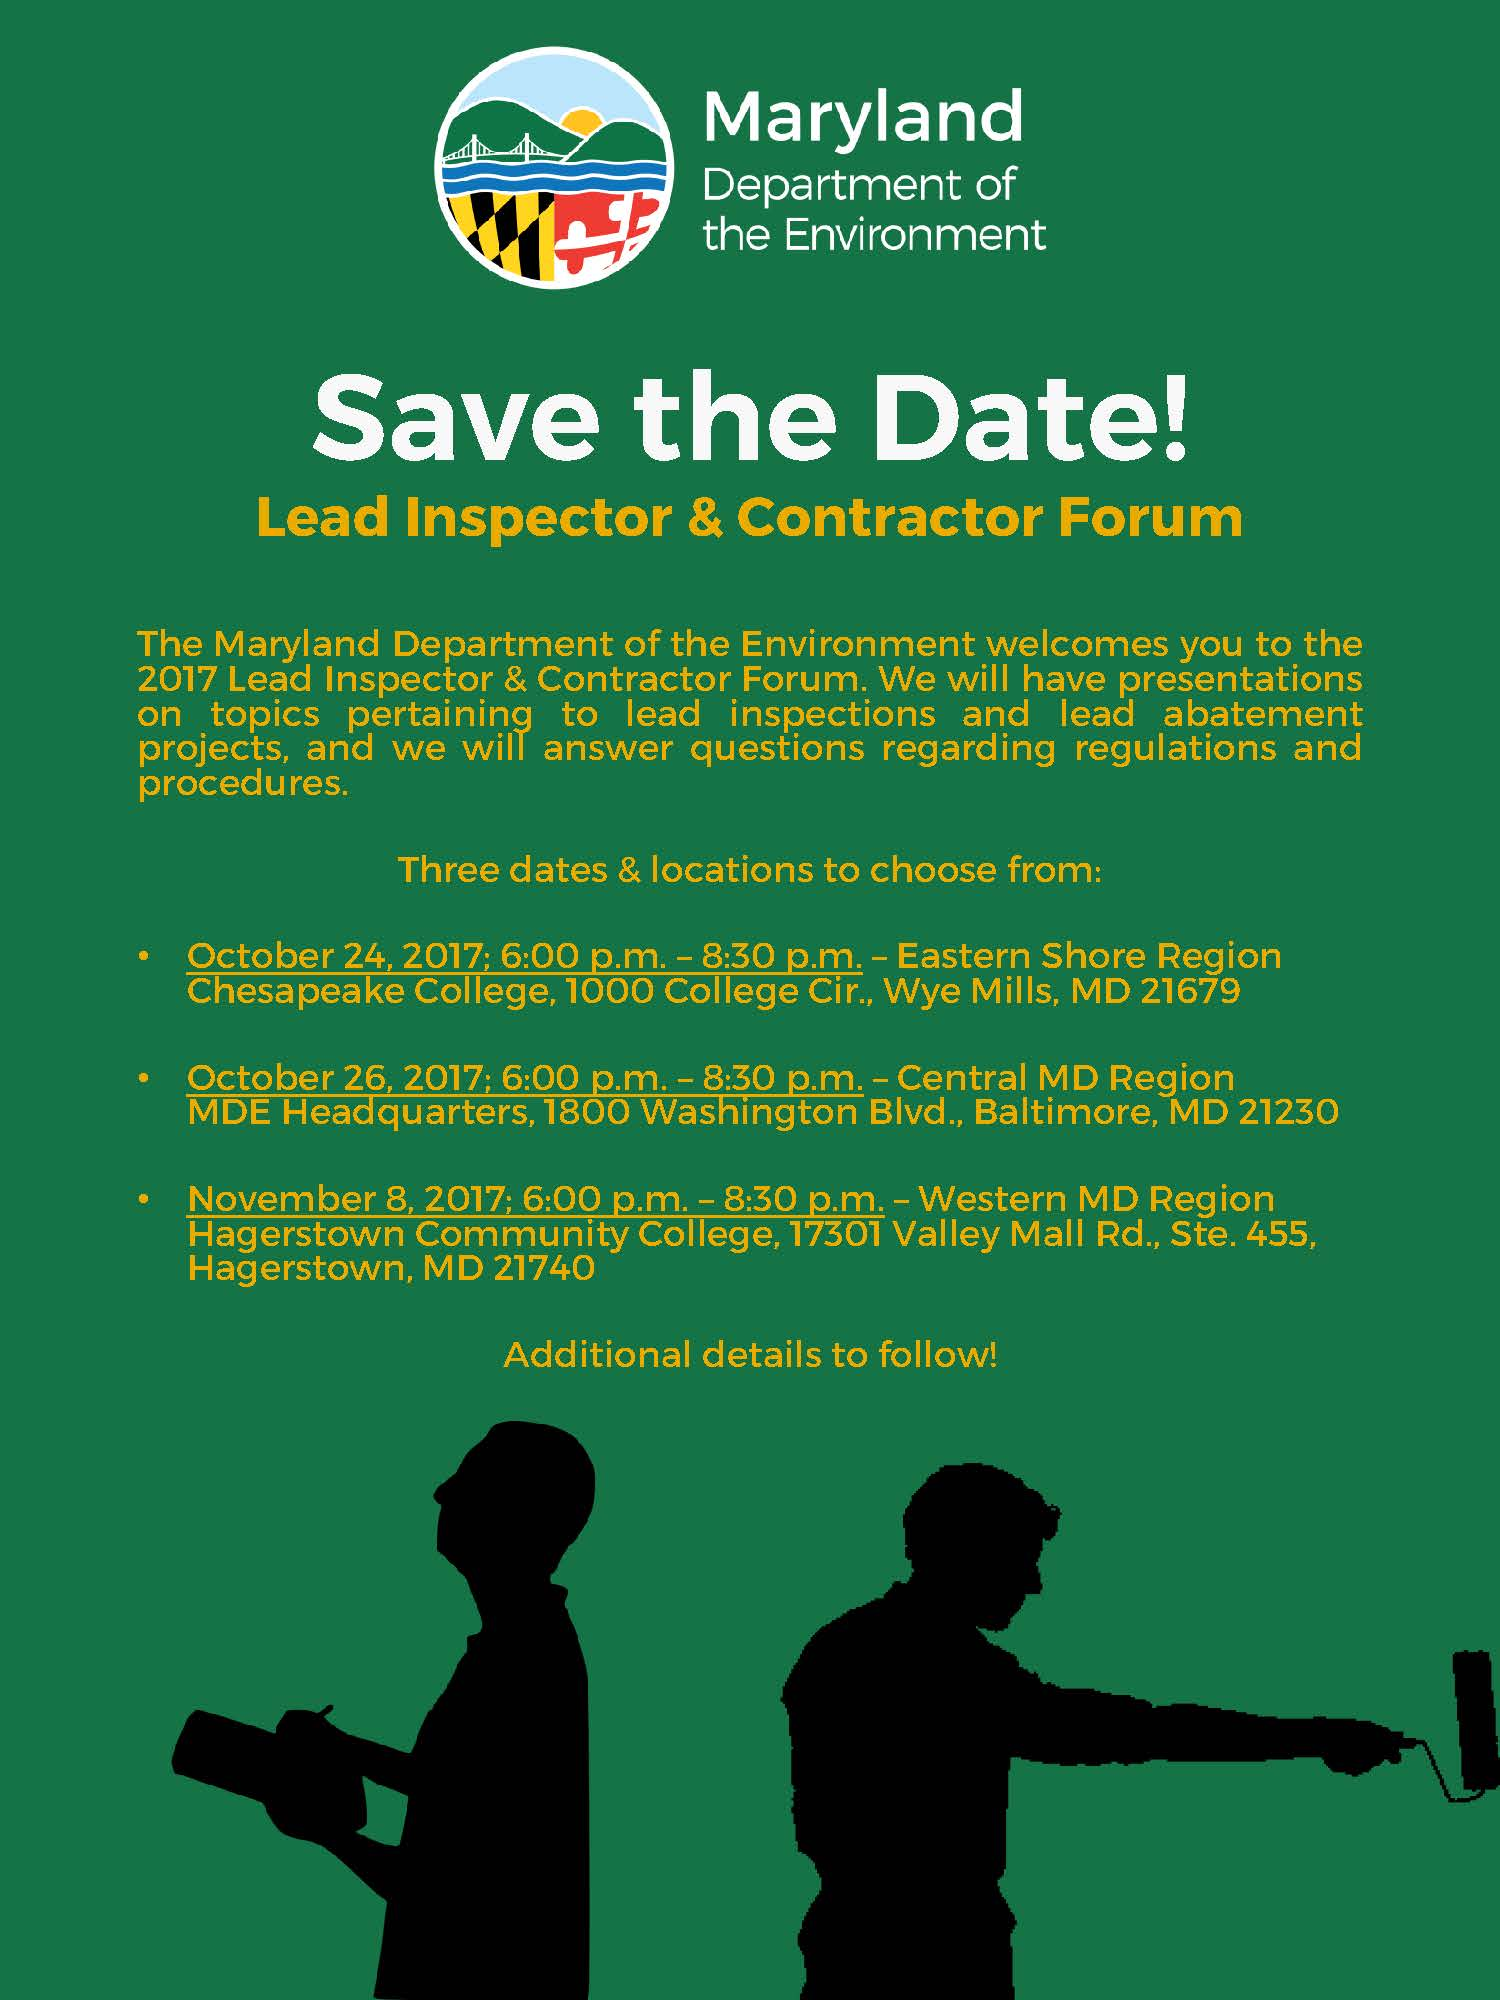 Leadfs2017_InspectorContractorForums.jpg